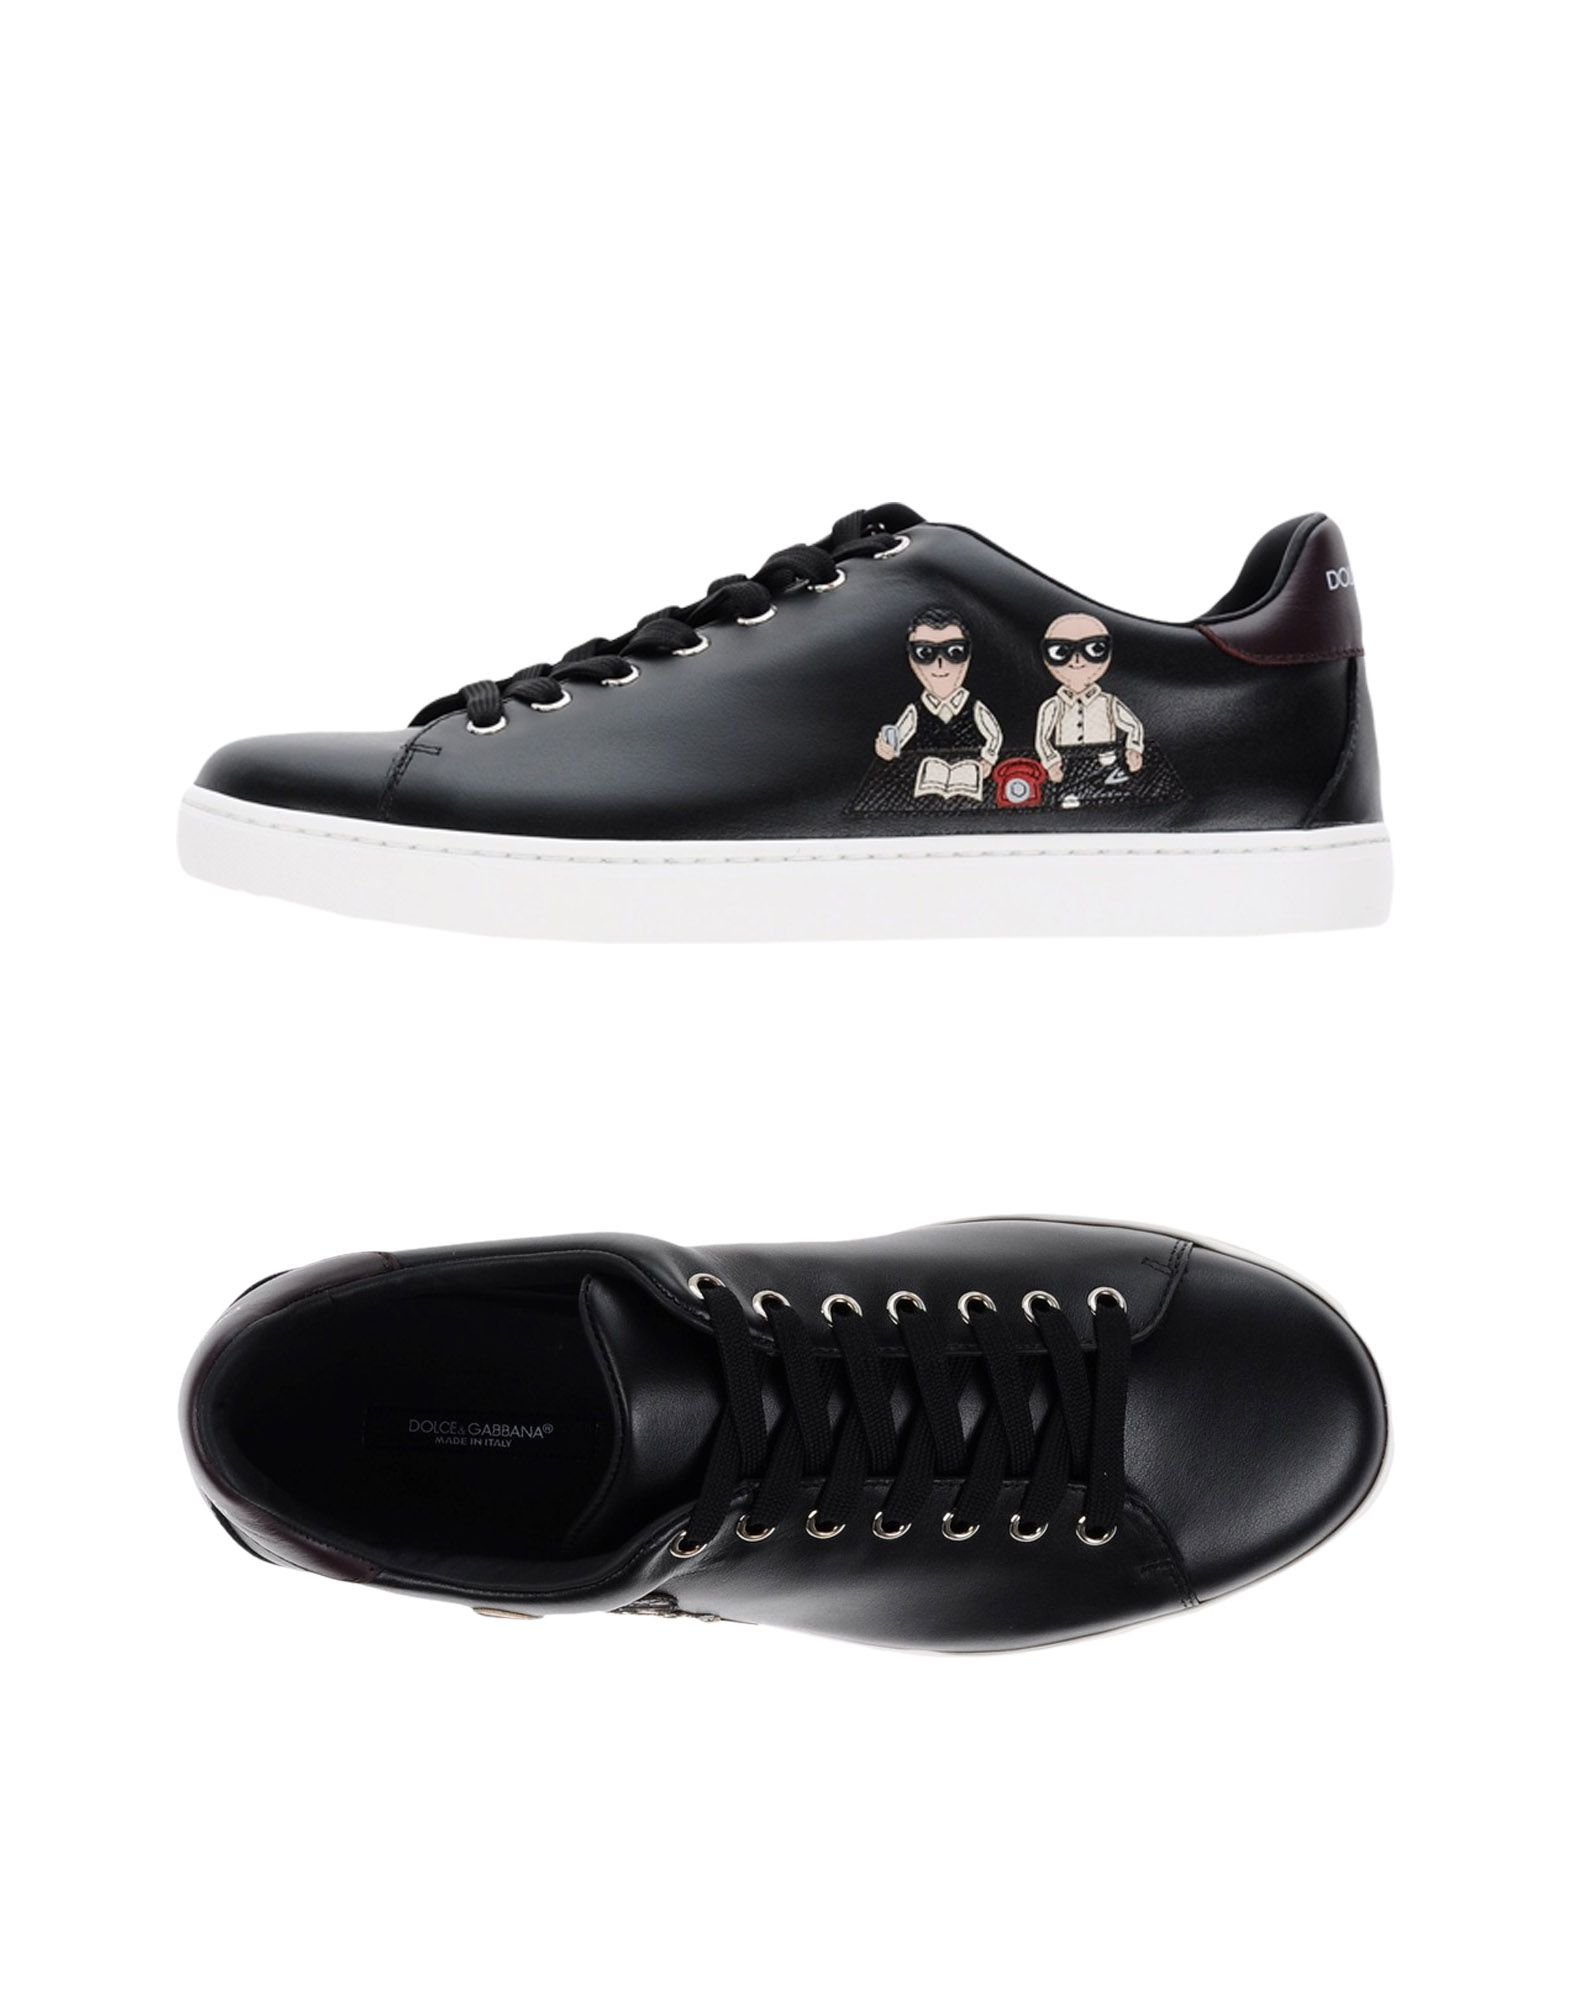 Sneakers Dolce & Gabbana Homme - Sneakers Dolce & Gabbana sur